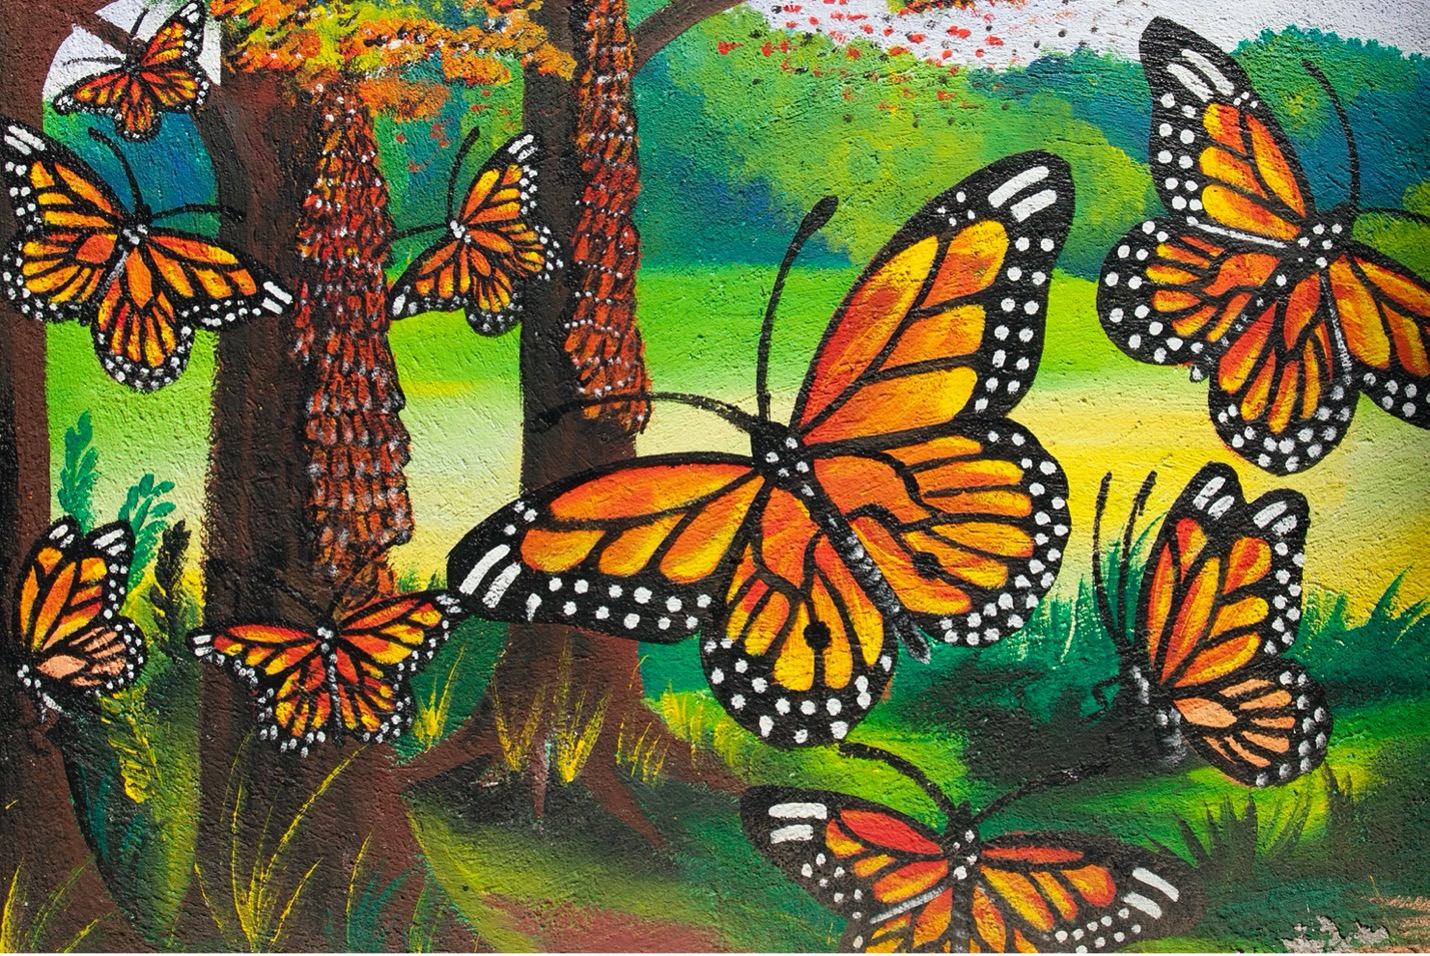 a mural at El Rosario biosphere reserve showcases a brilliant monarch butterfly